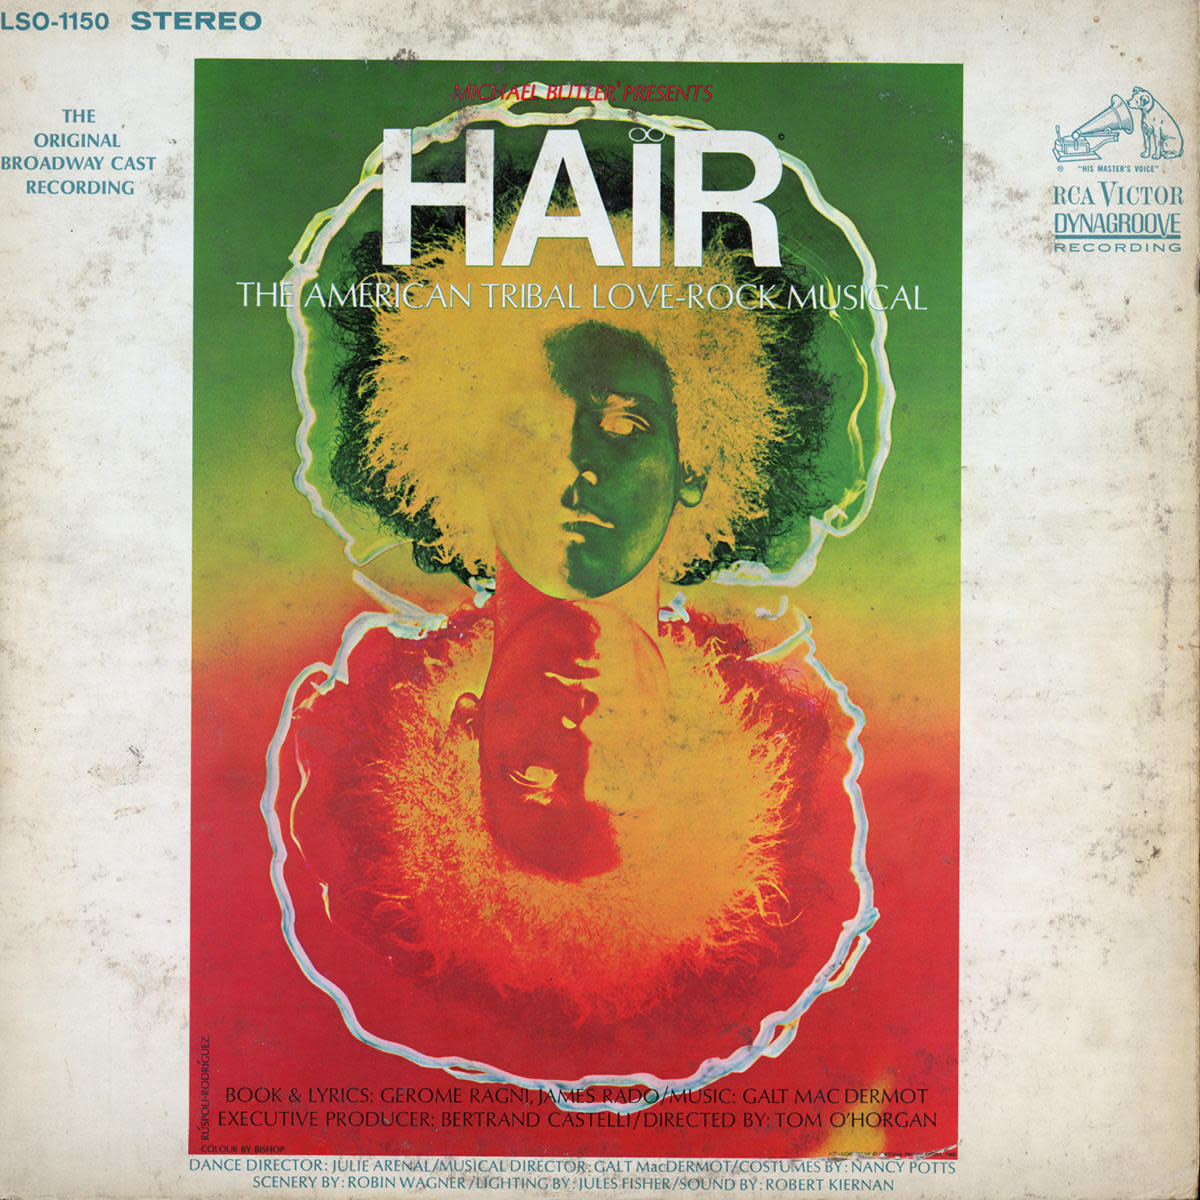 View of the cover of the original Broadway cast recording of the musical 'Hair,' 1968. Published by RCA Victor Records. (Credit: Blank Archives/Getty Images)